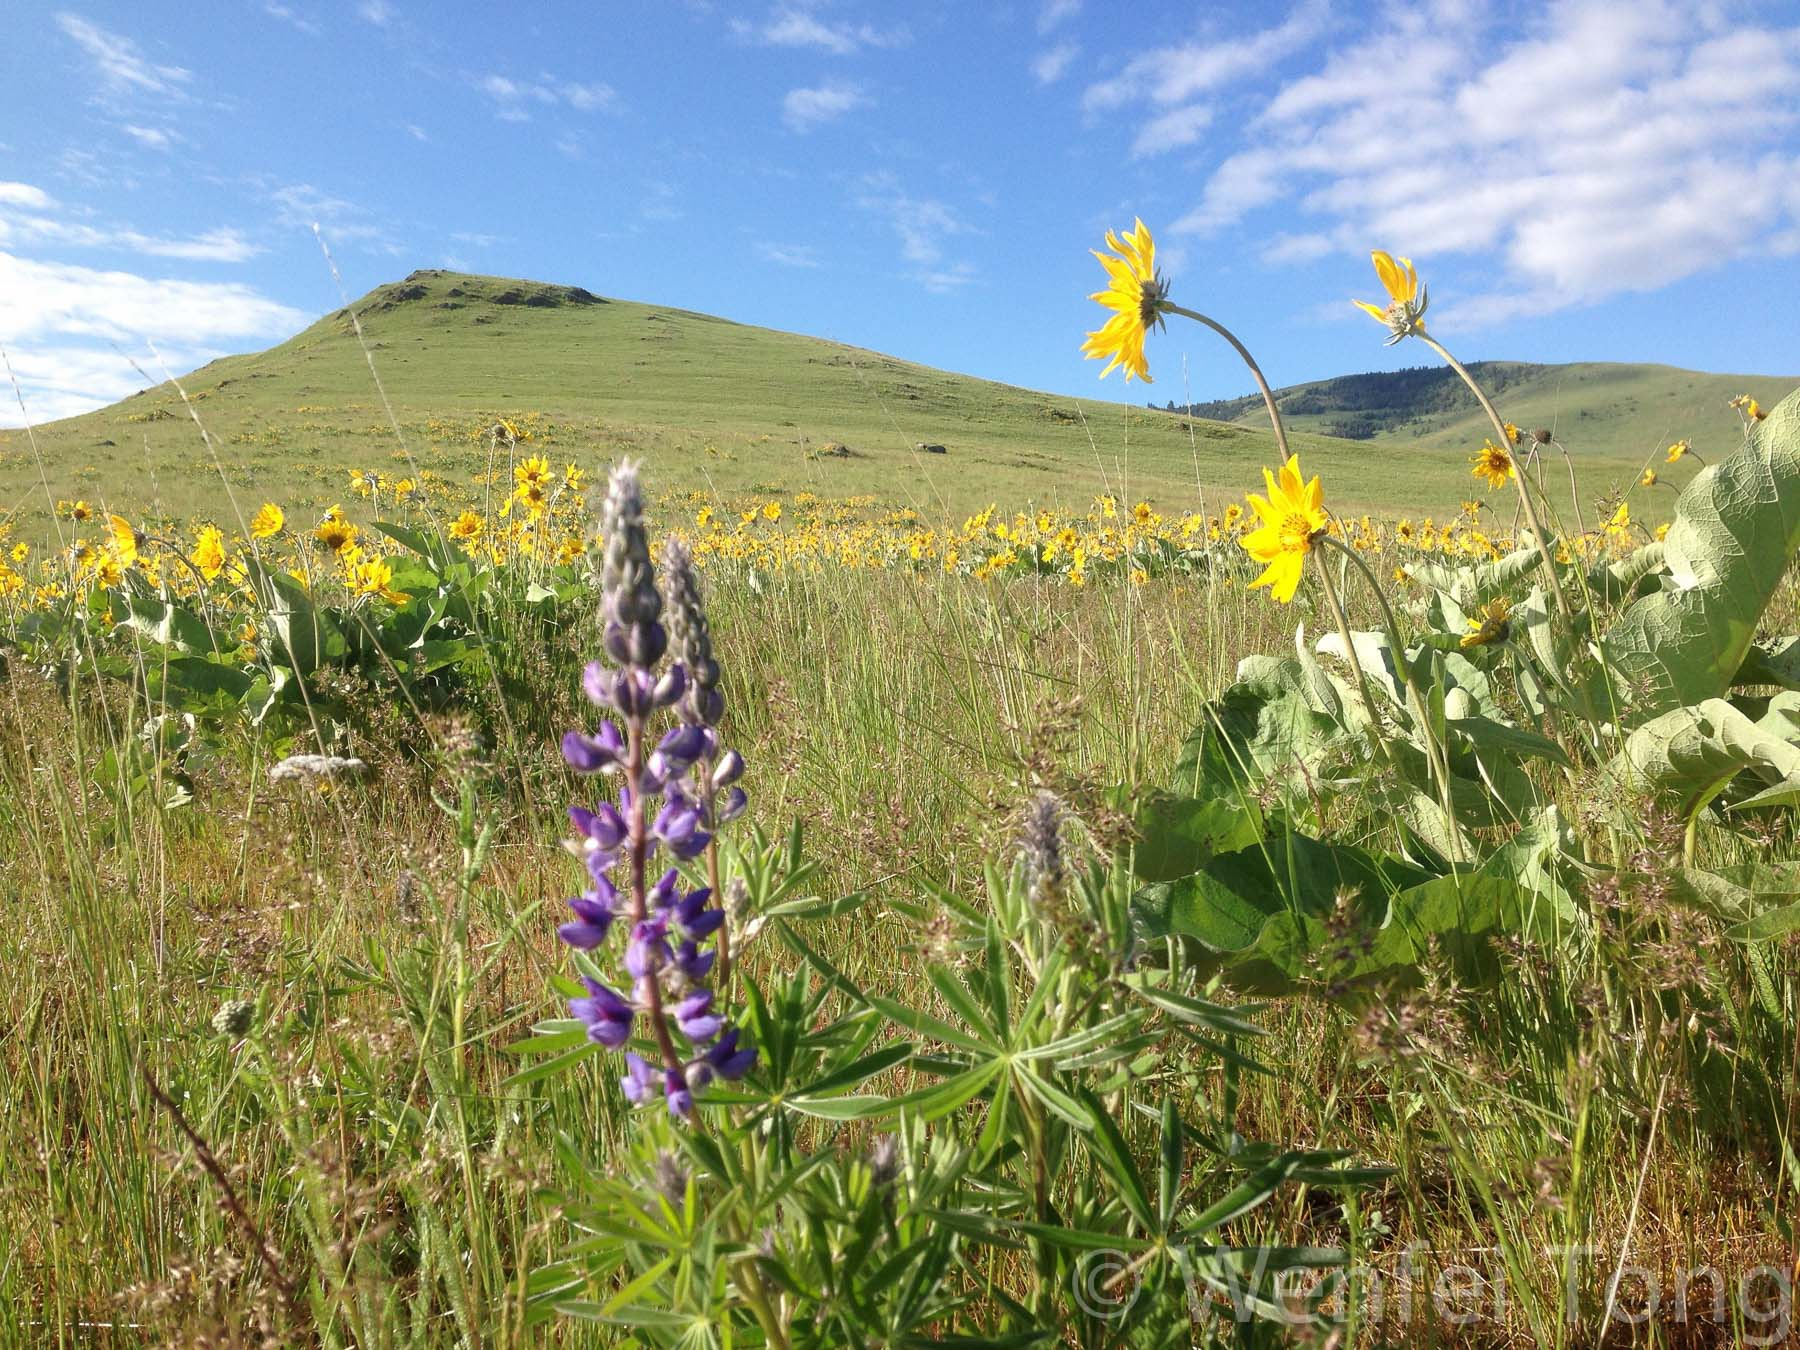 Lupines and arrowleaf balsamroot